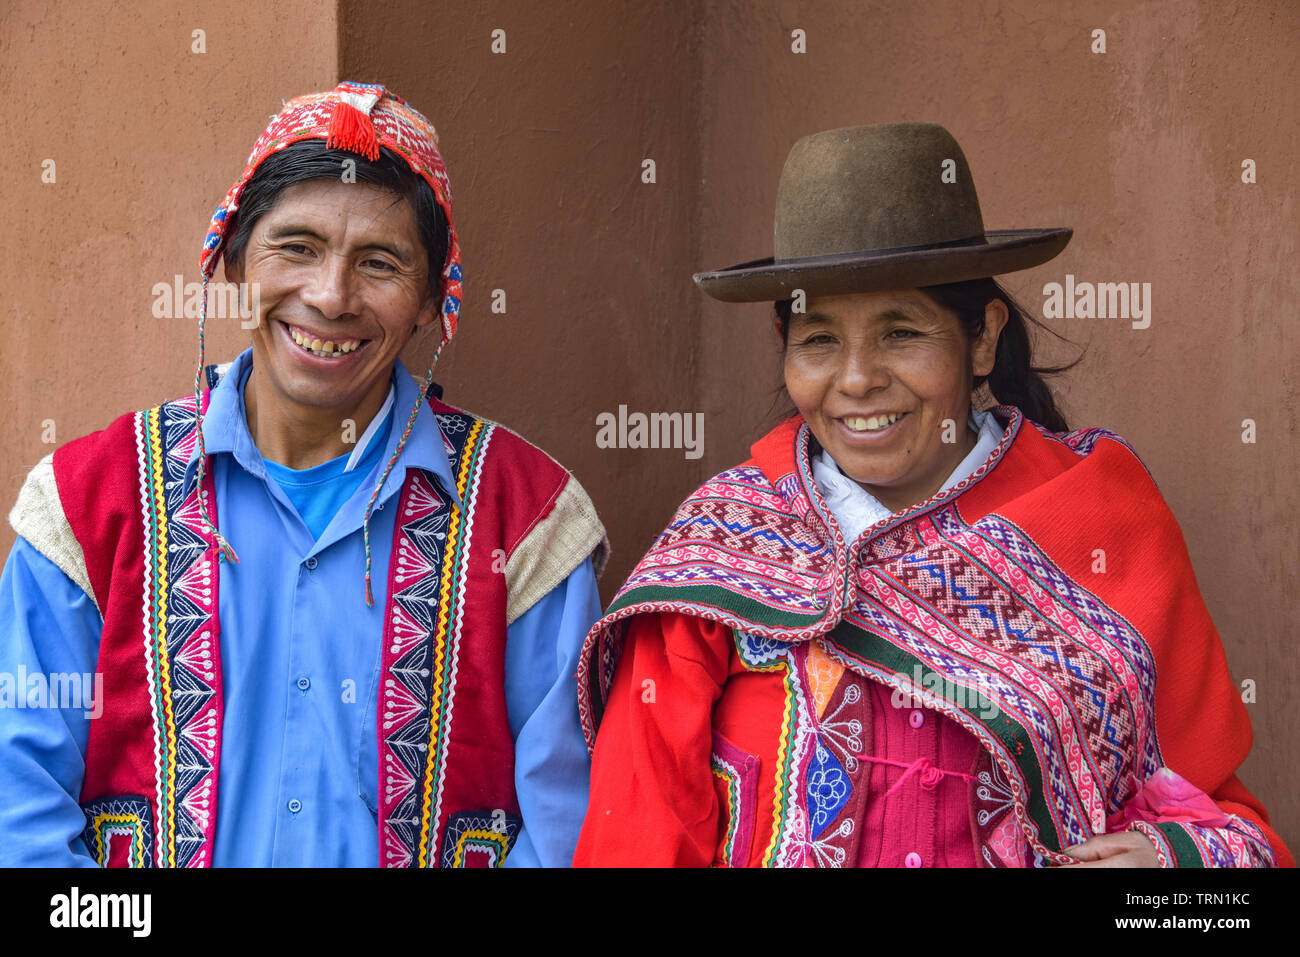 Sacred Valley, Cusco, Peru - Oct 13, 2018: An indigenous Quechua man and woman in the Yachaq community of Janac Chuquibamba - Stock Image